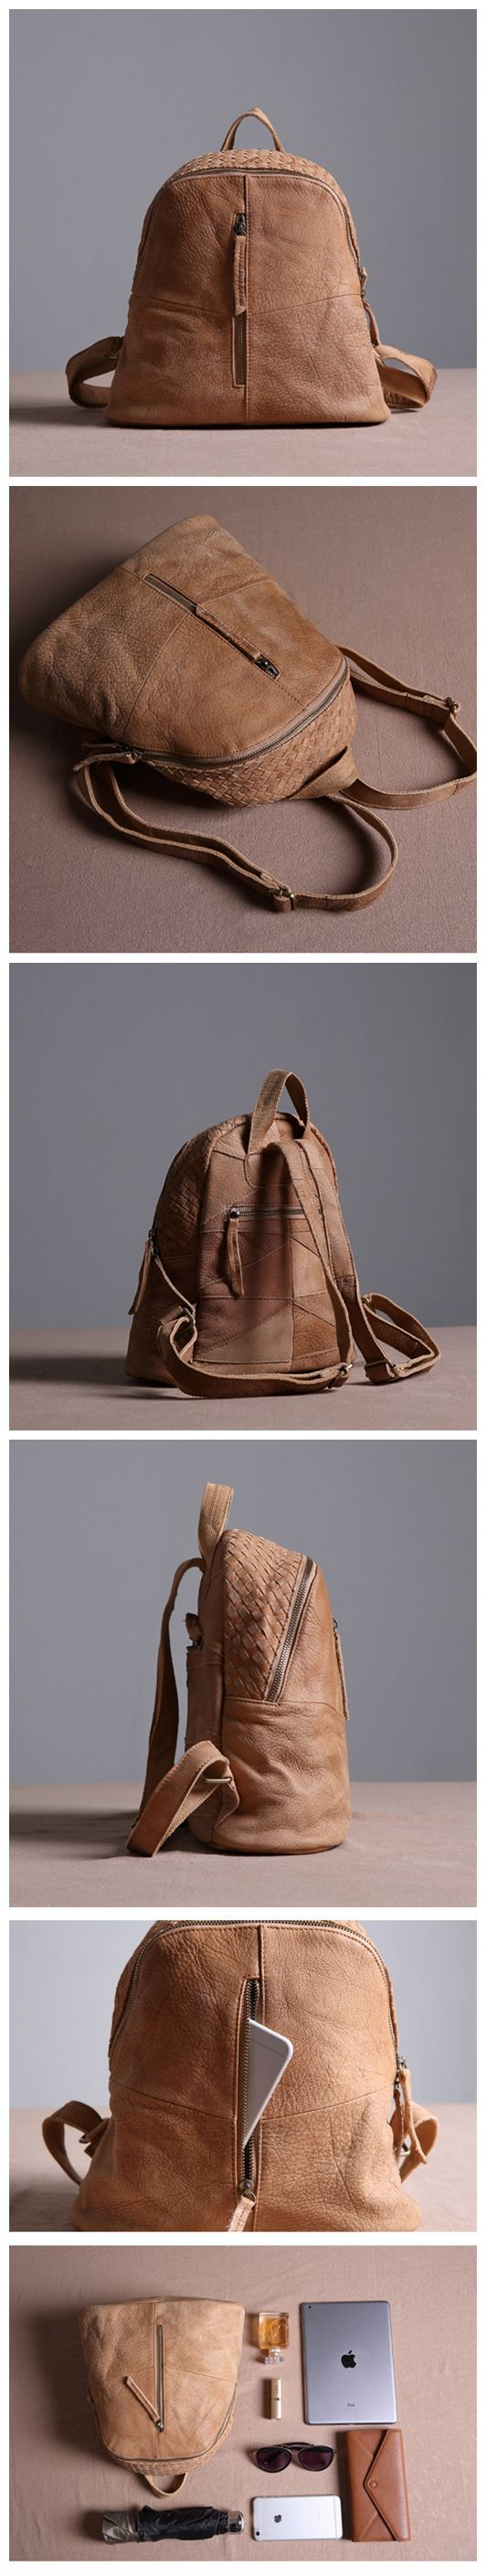 Genuine Leather School Backpack Casual Rucksack Travel Backpack Daily Bag 14087 -------------------------------- Overview: Design: Vintage Vegetable Tanned Leather Backpack In Stock: 4-5 days For Maki